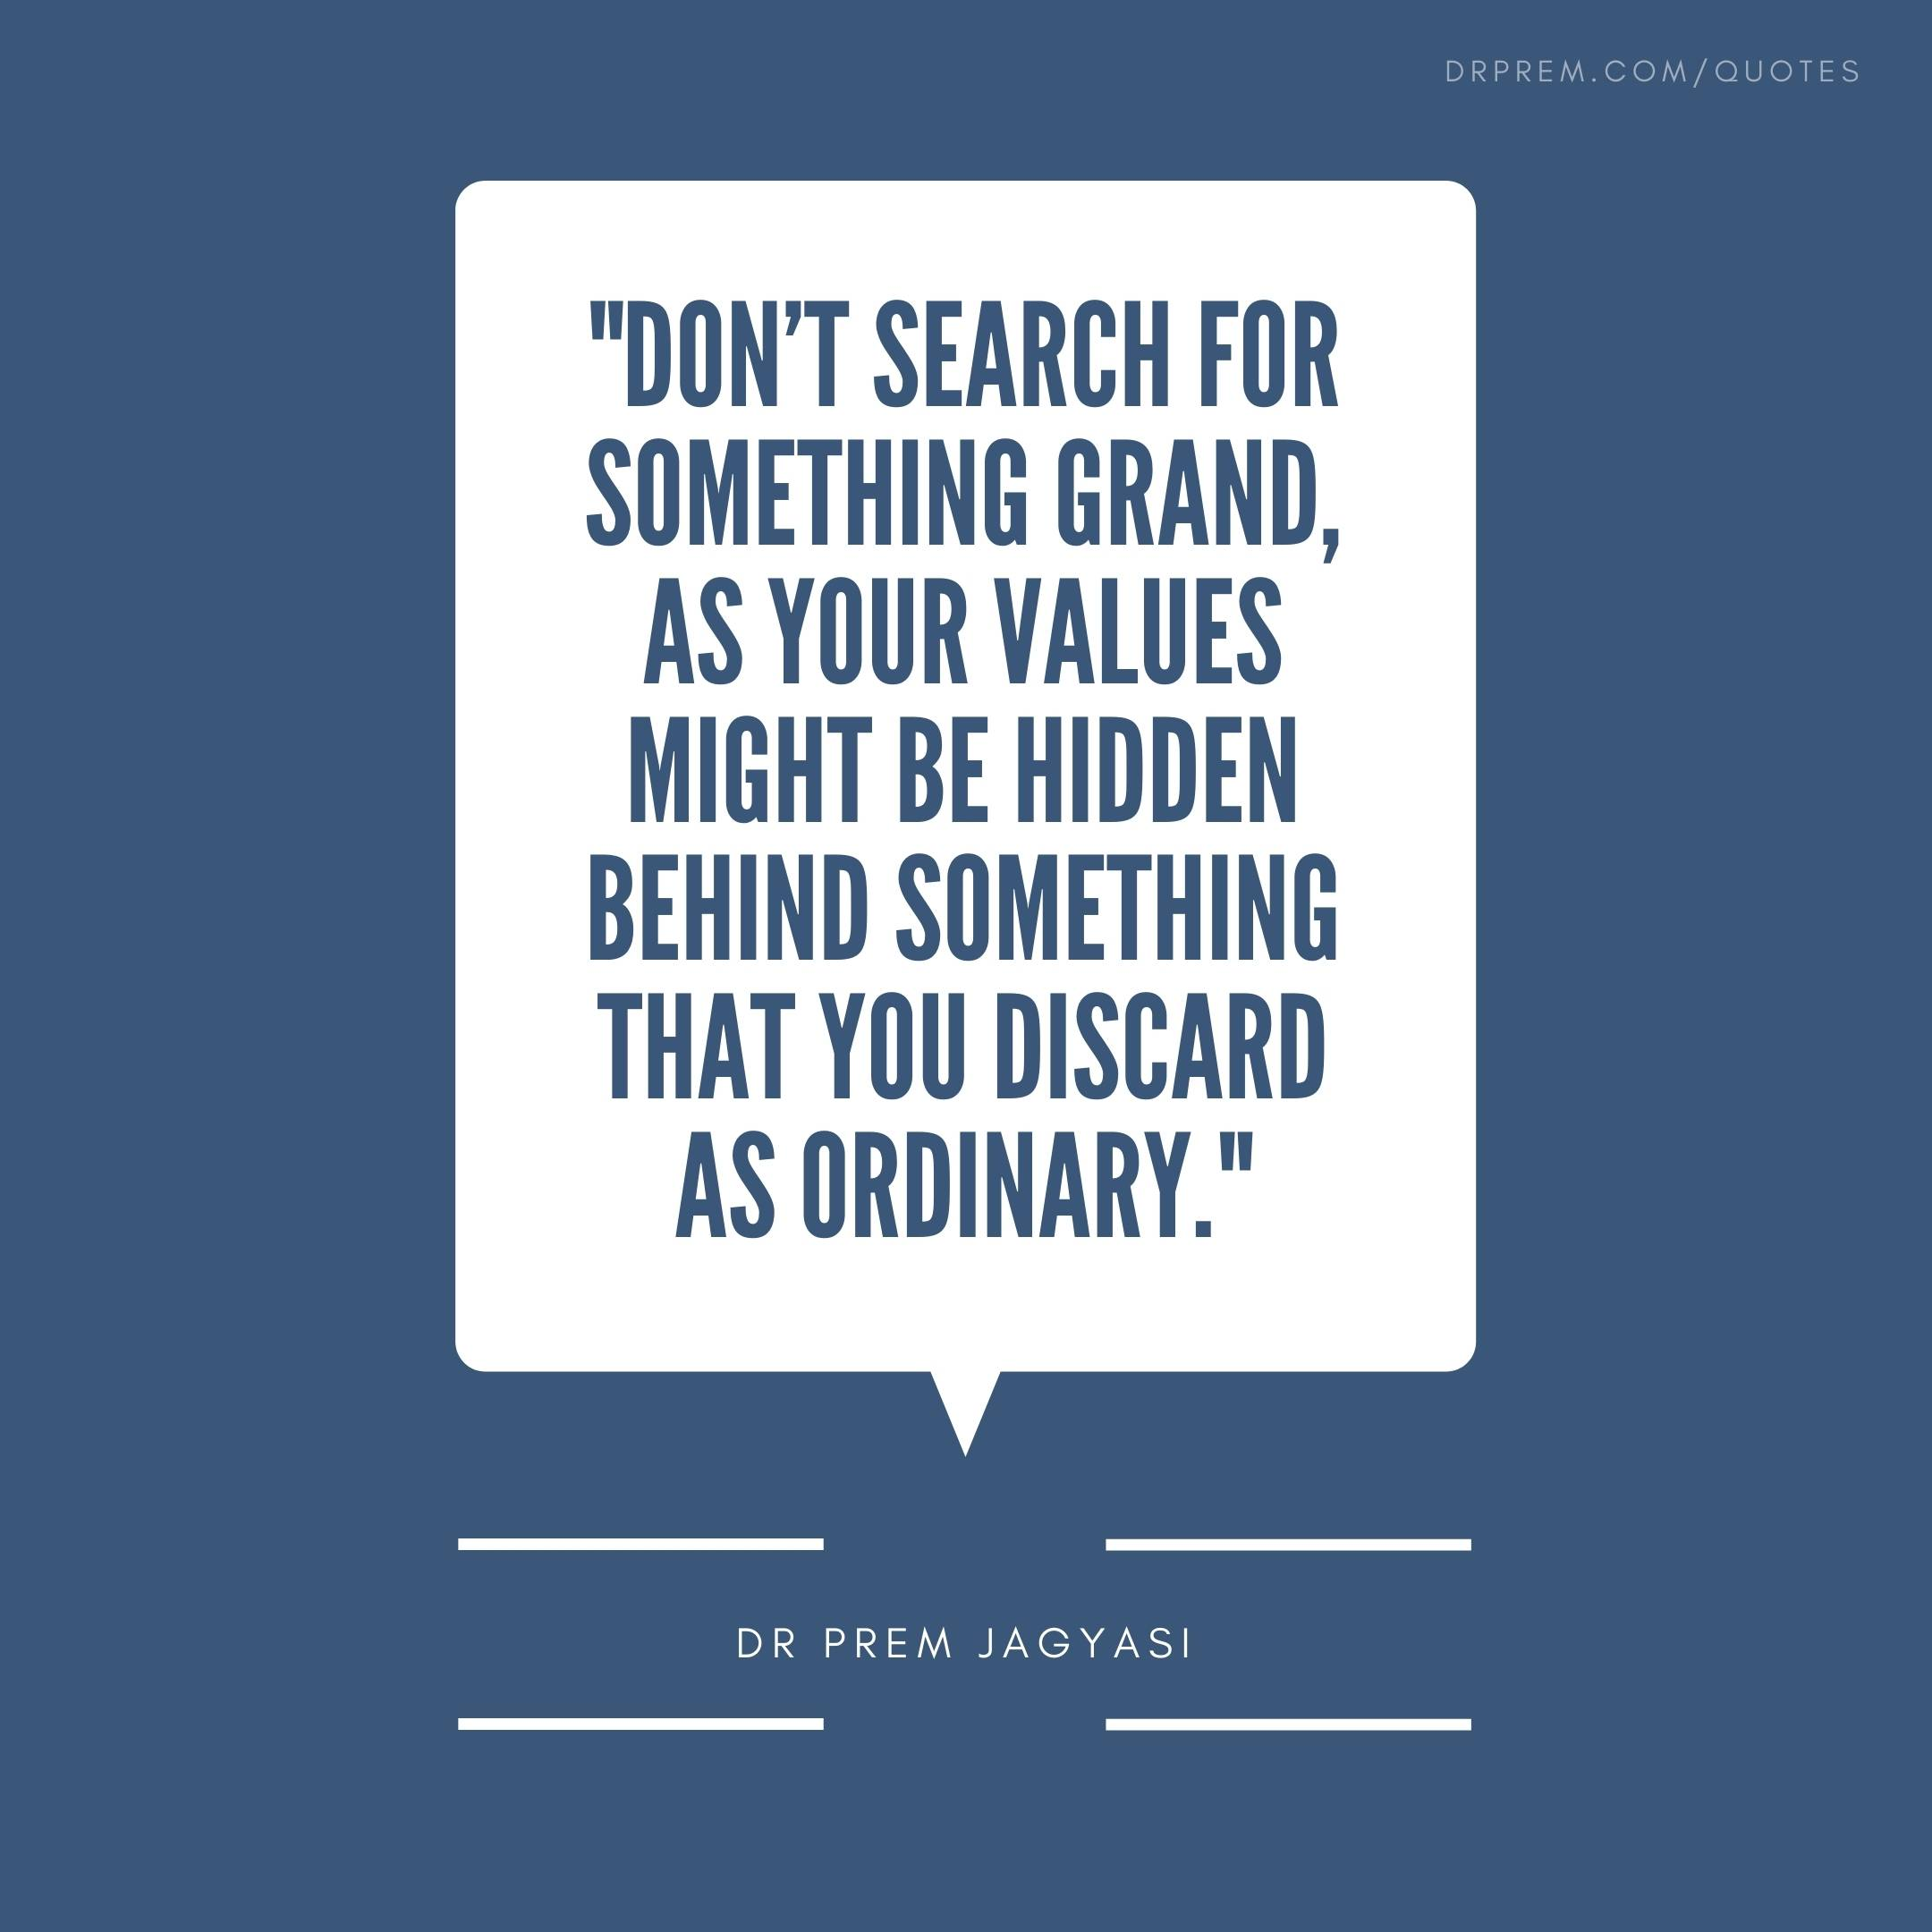 Don't search for something grand, as your values might be hidden behind something that you discard as ordinary.